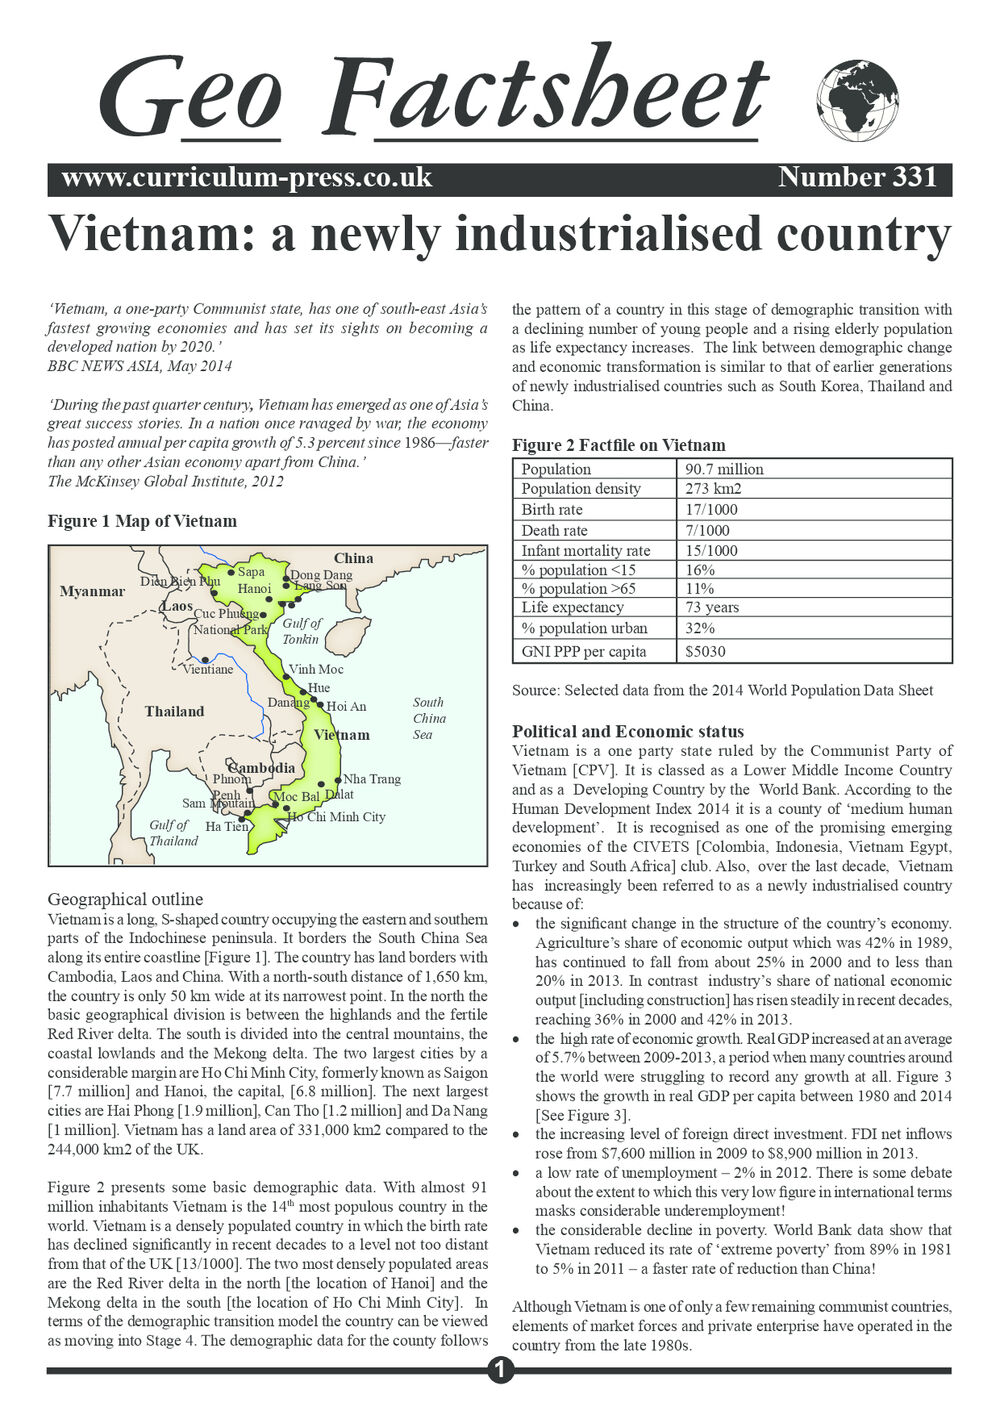 Vietnam: A Newly Industrialised Country - Curriculum Press